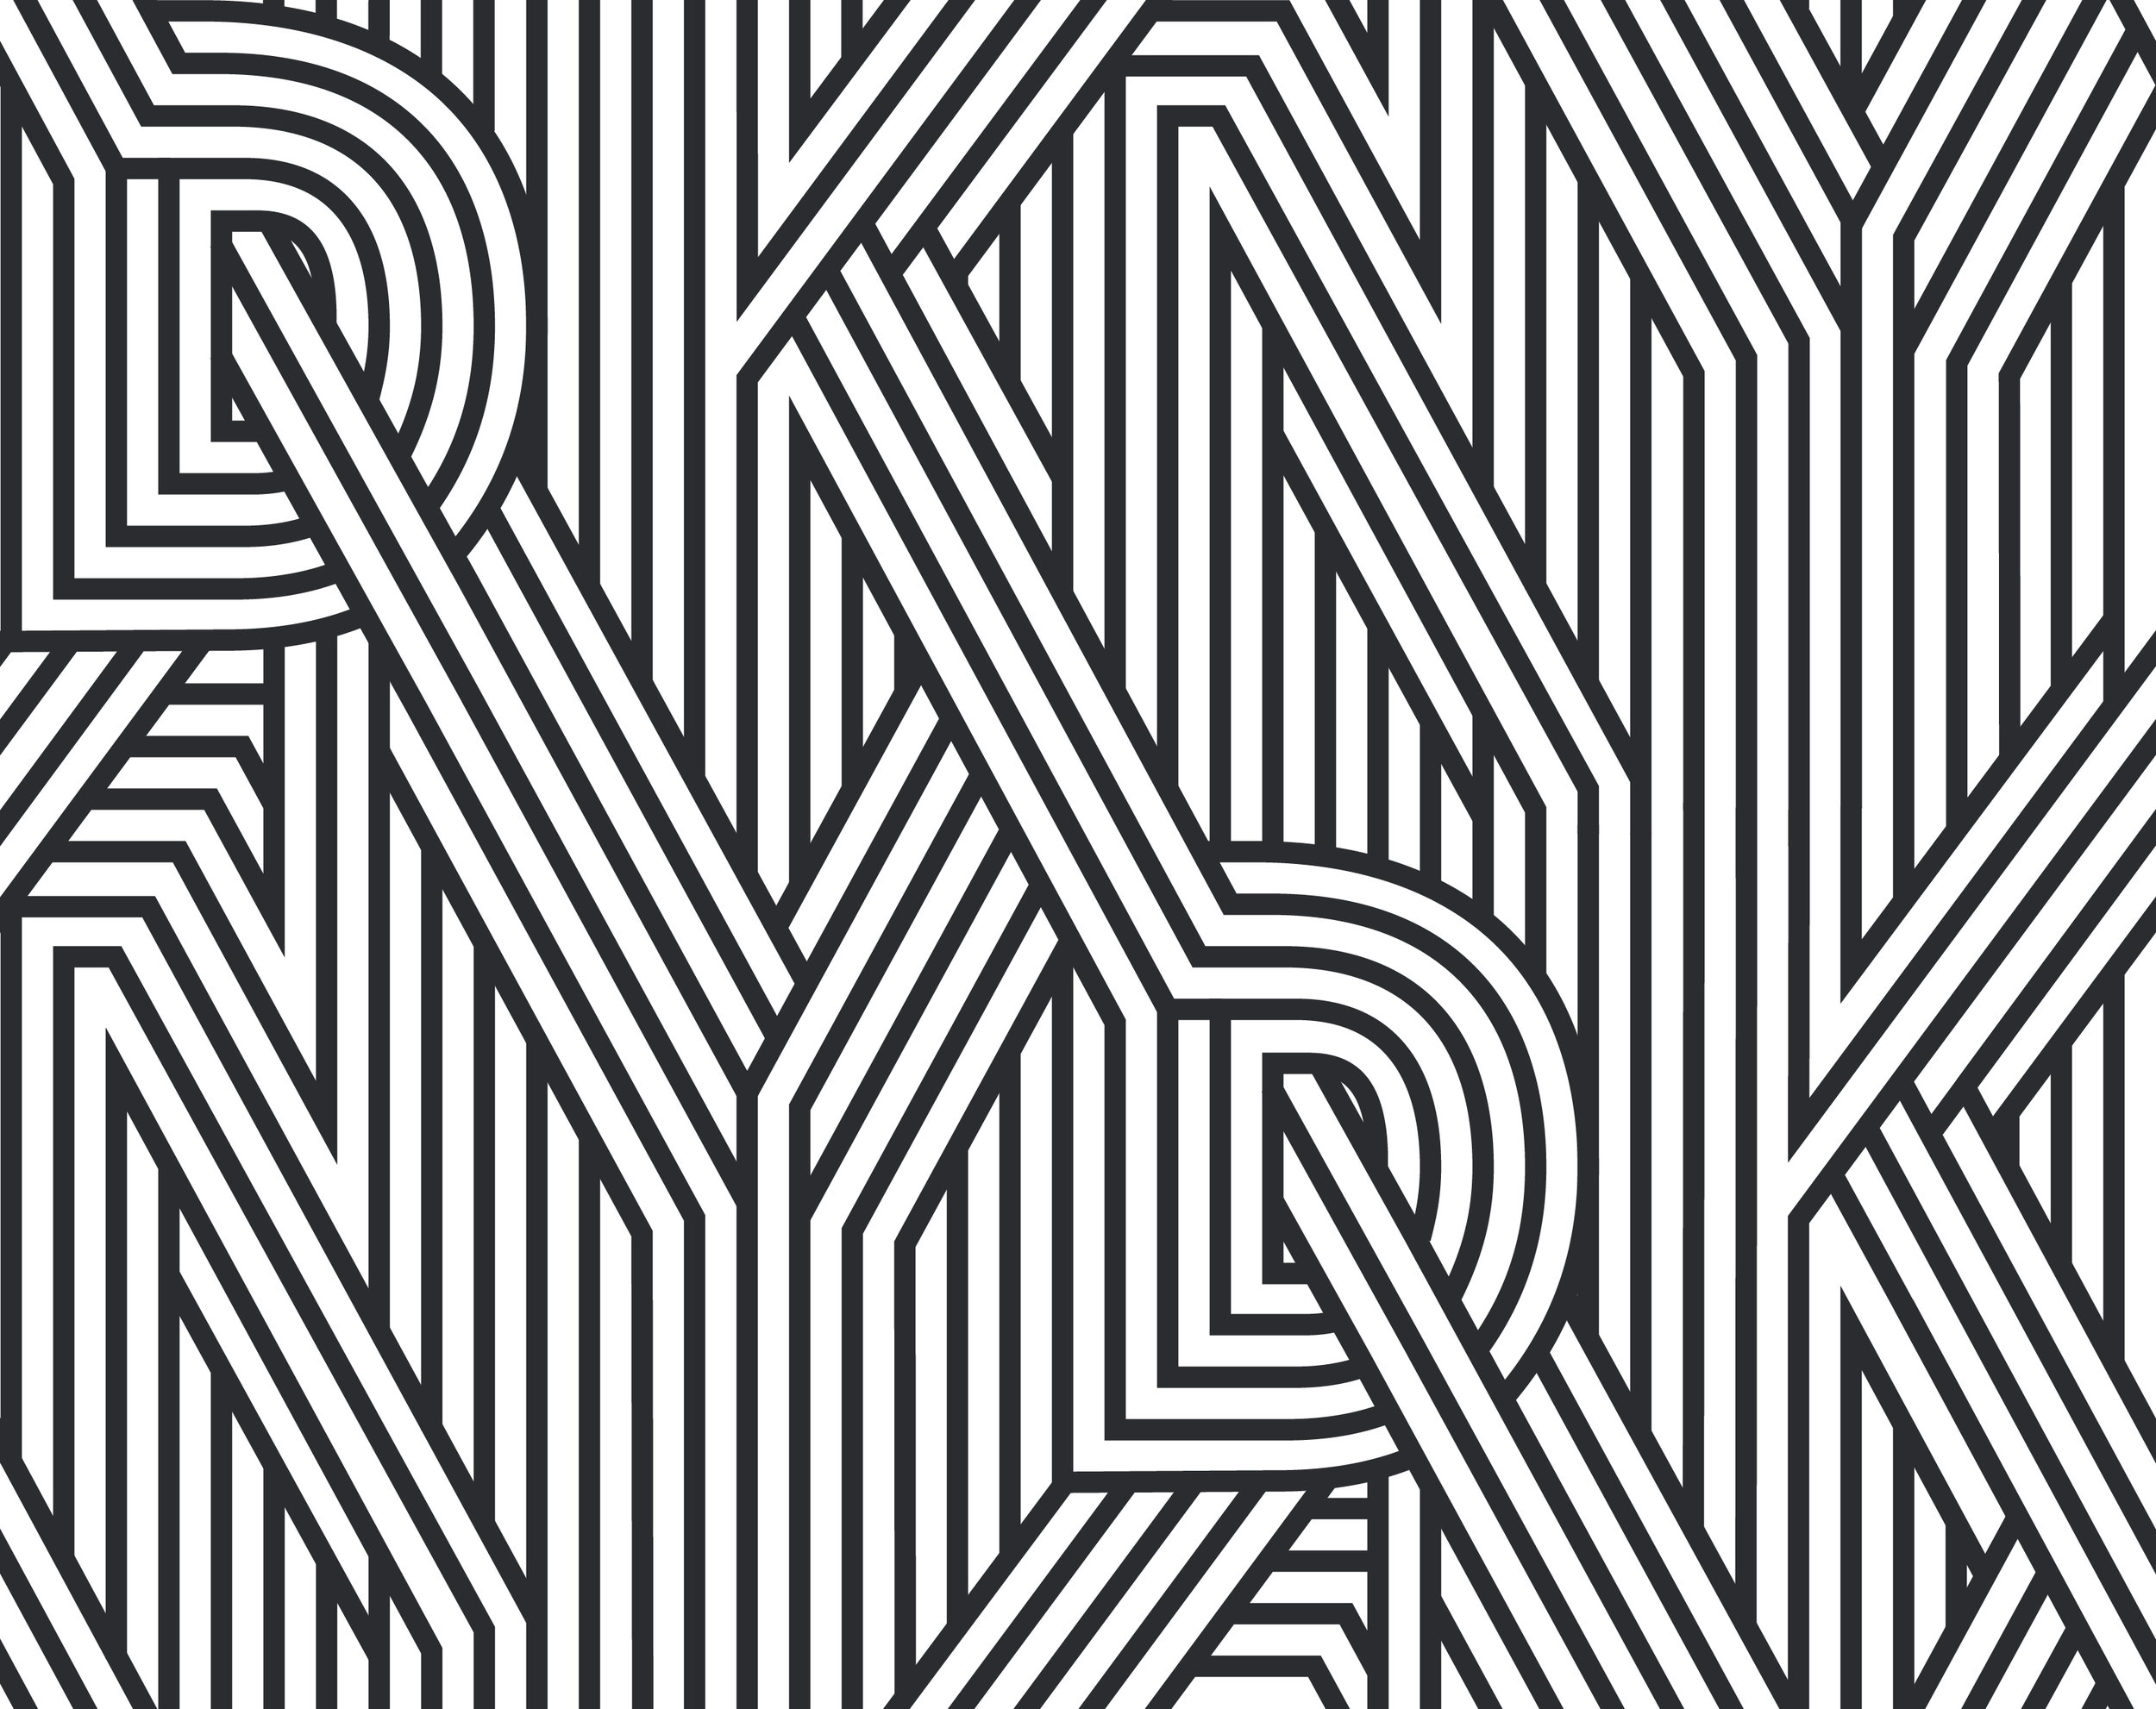 DKNY_LOGO_CrosswalkPattern_final-01.jpg